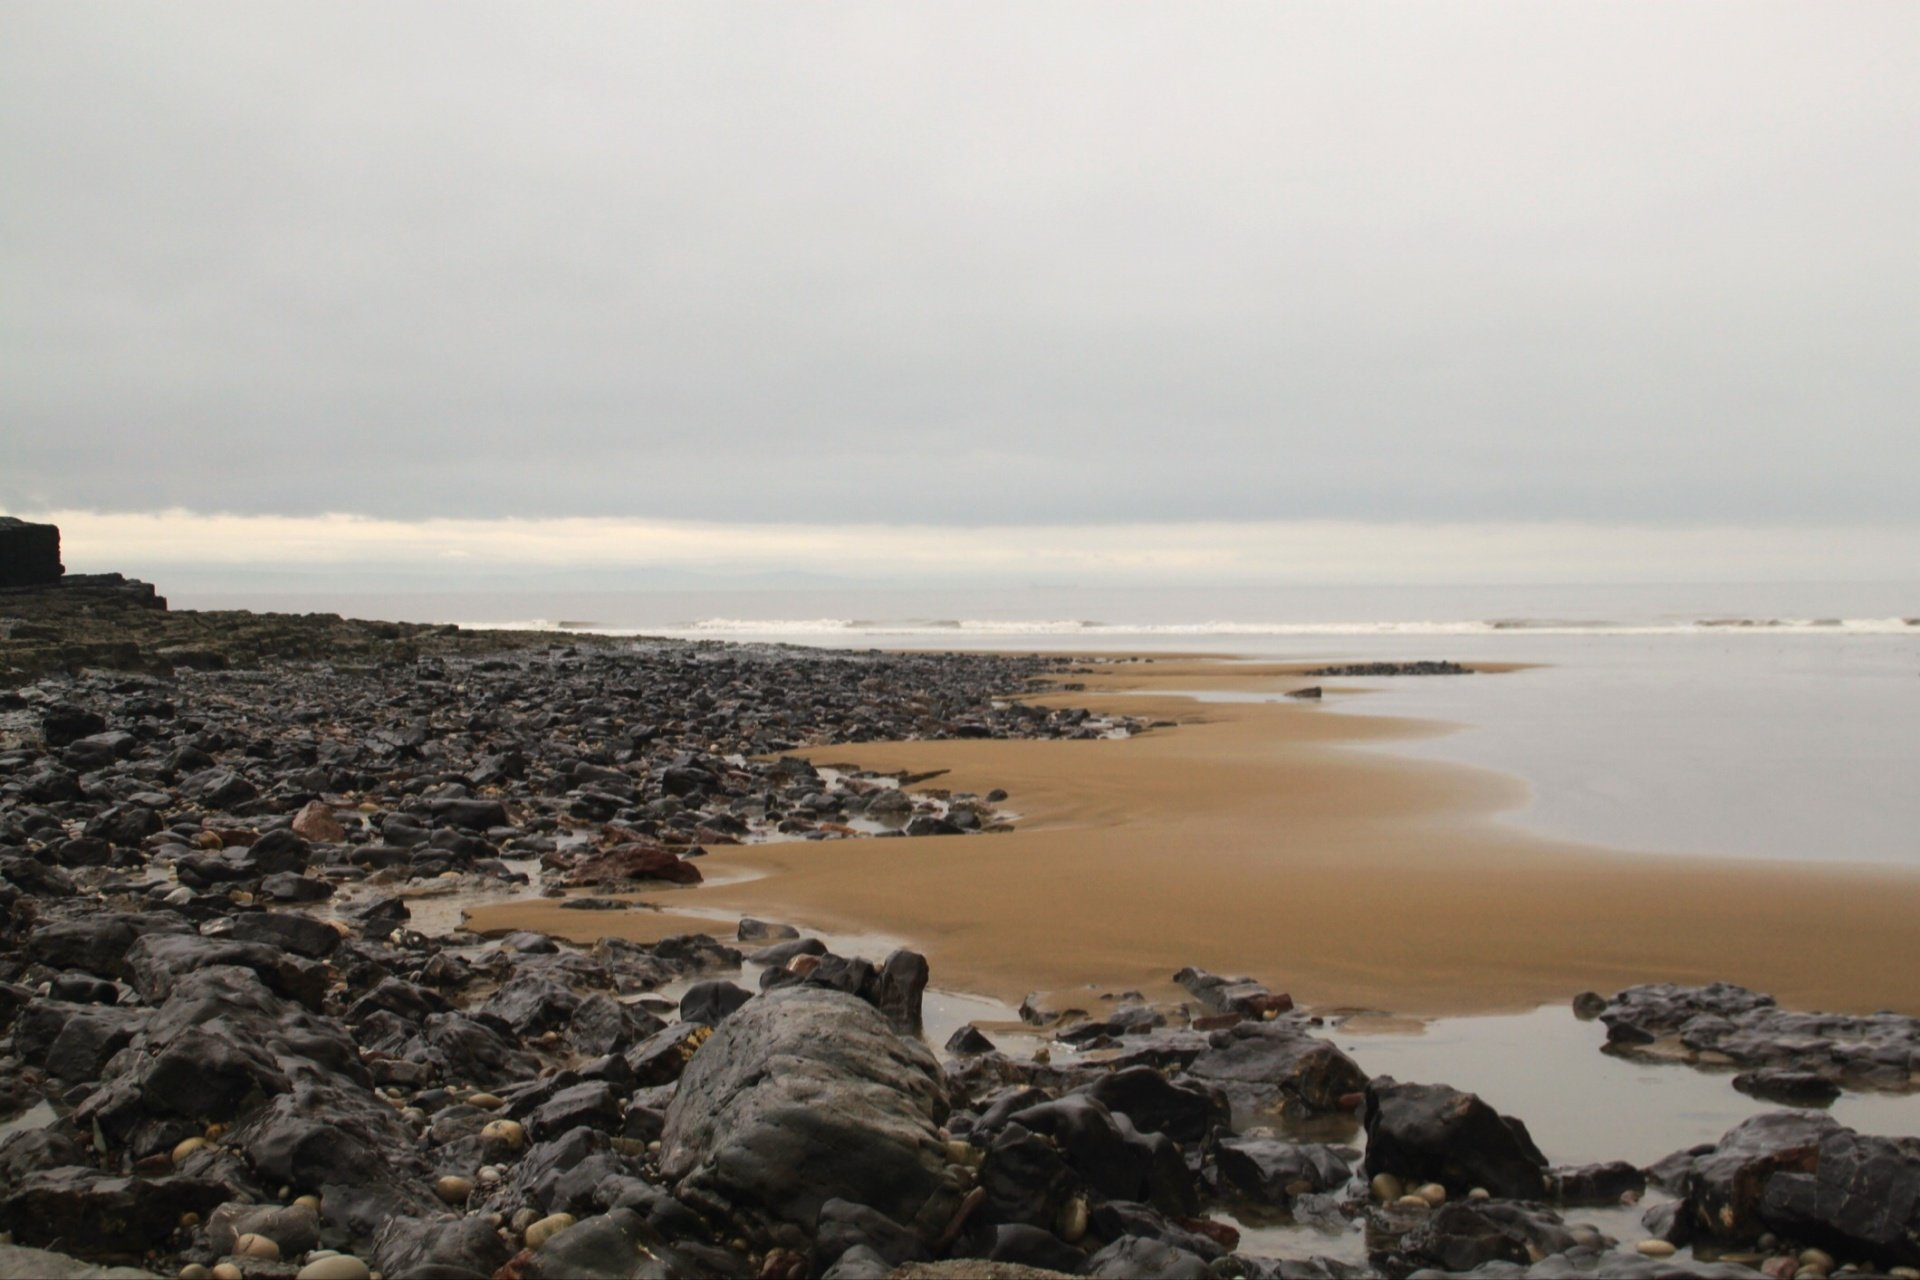 user307174's photo of Porthcawl - Rest Bay